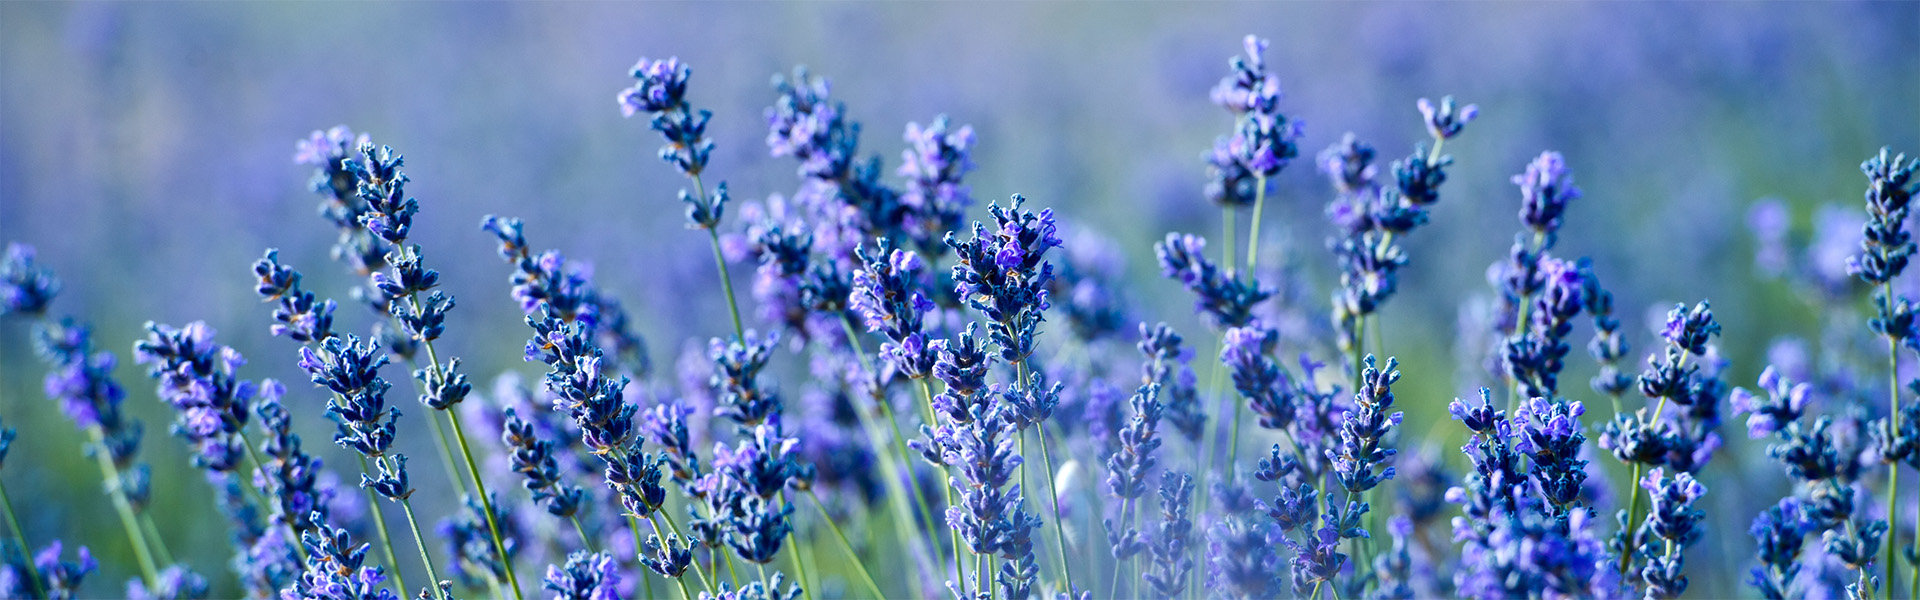 "<p data-aos=fade-up style=""text-align:center""><strong>Lavender</strong></p>"